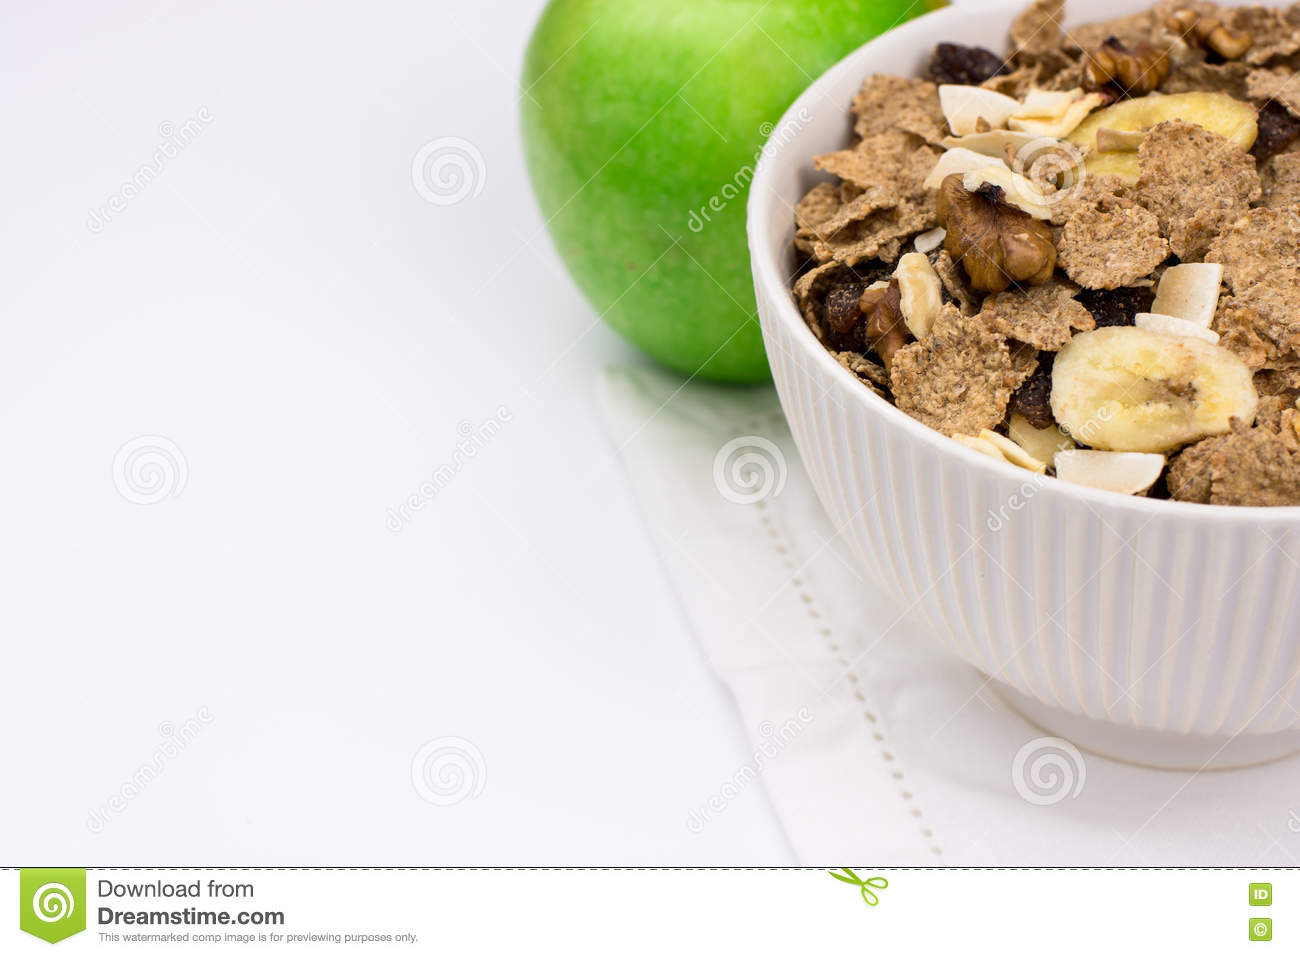 White Bowl With Rye Flakes Muesli On White Towel With